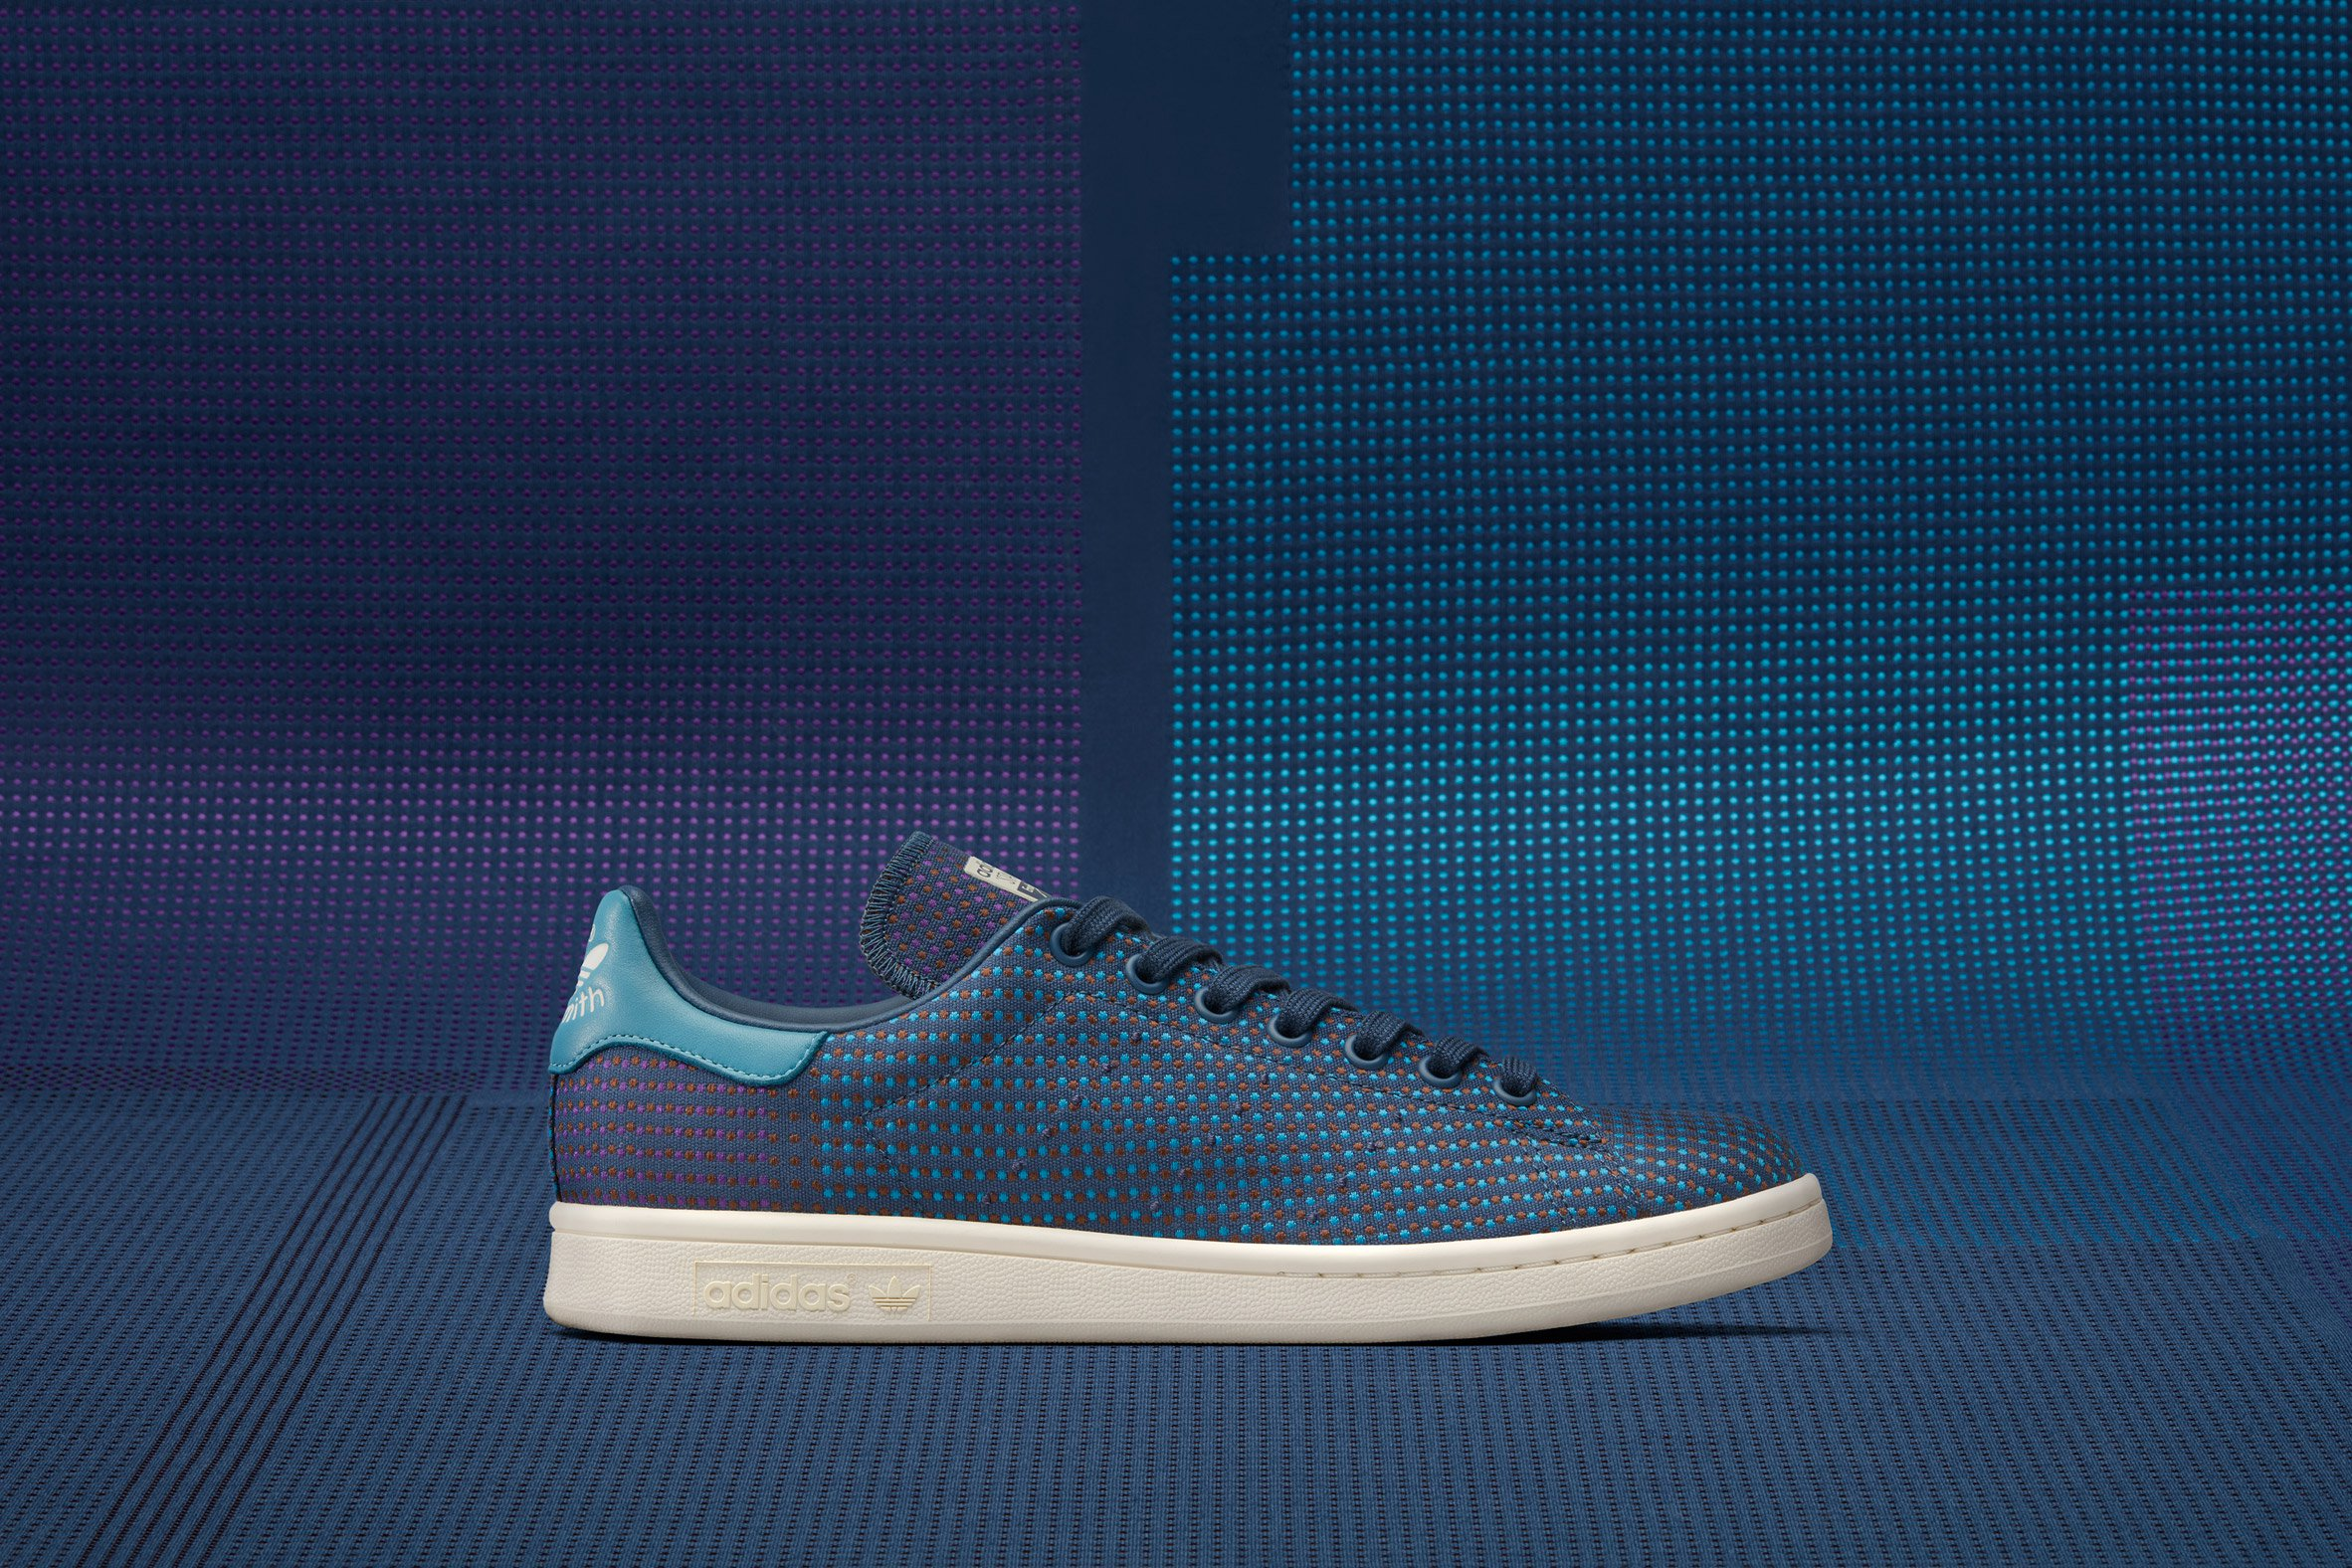 kvadrat-adidas-originals-special-edition-stan-smith-design_dezeen_2364_col_3 copy.jpg